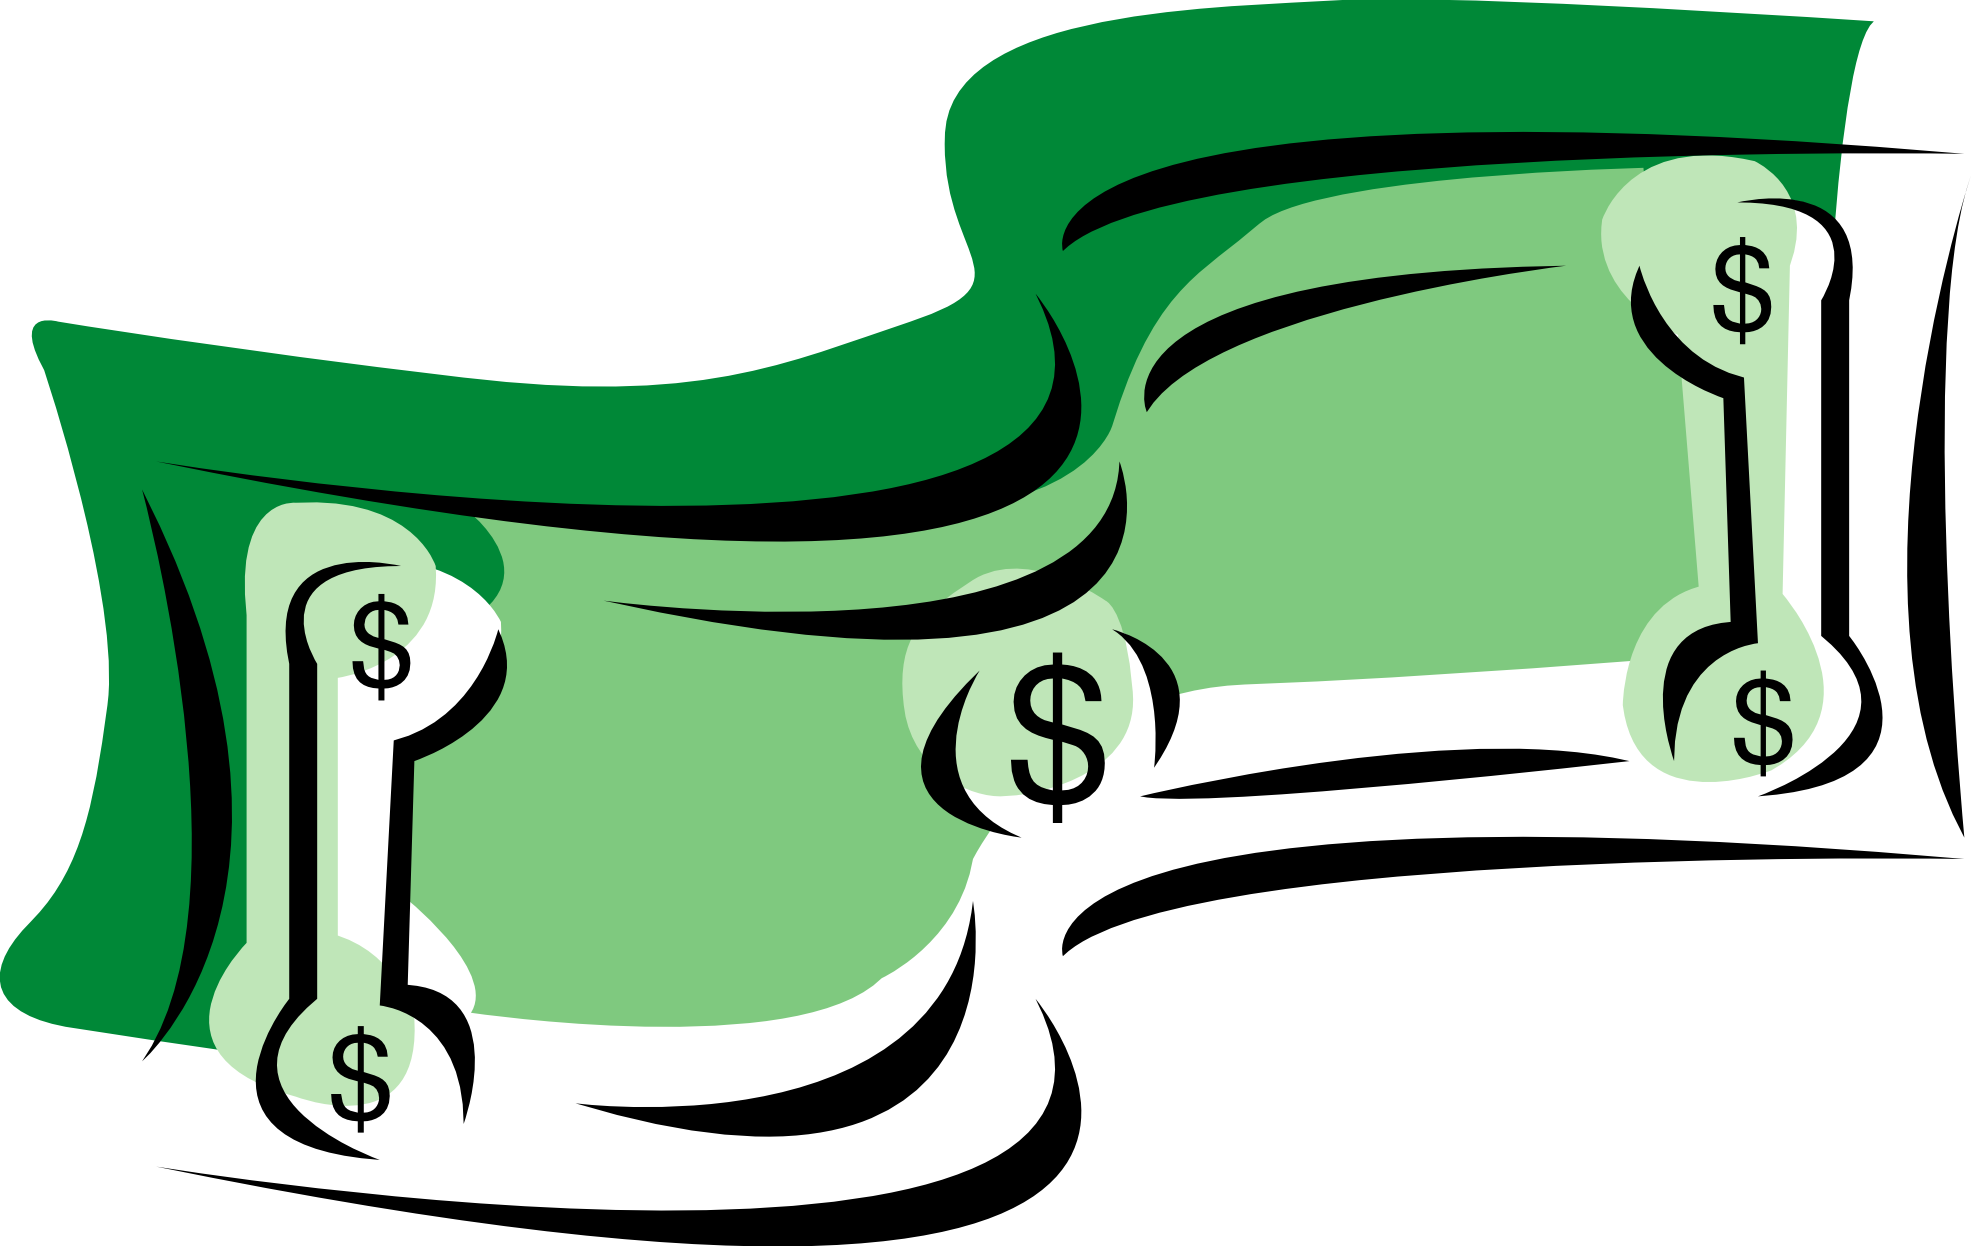 Money clipart wallpaper clipart transparent library Payday Clipart | Free download best Payday Clipart on ClipArtMag.com clipart transparent library